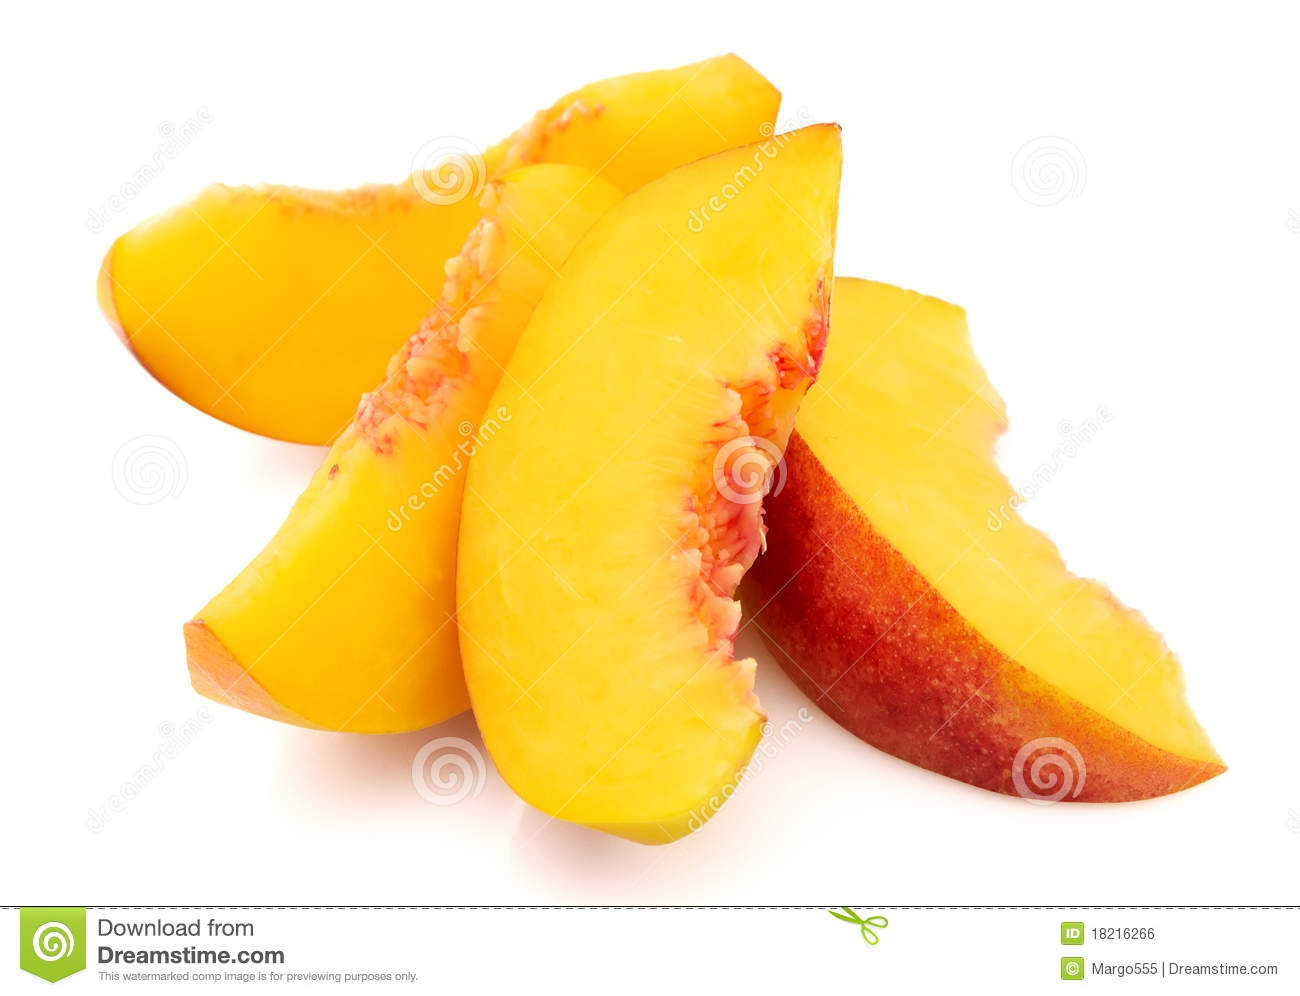 Peach Slices Royalty Free Stock Image - Image: 18216266